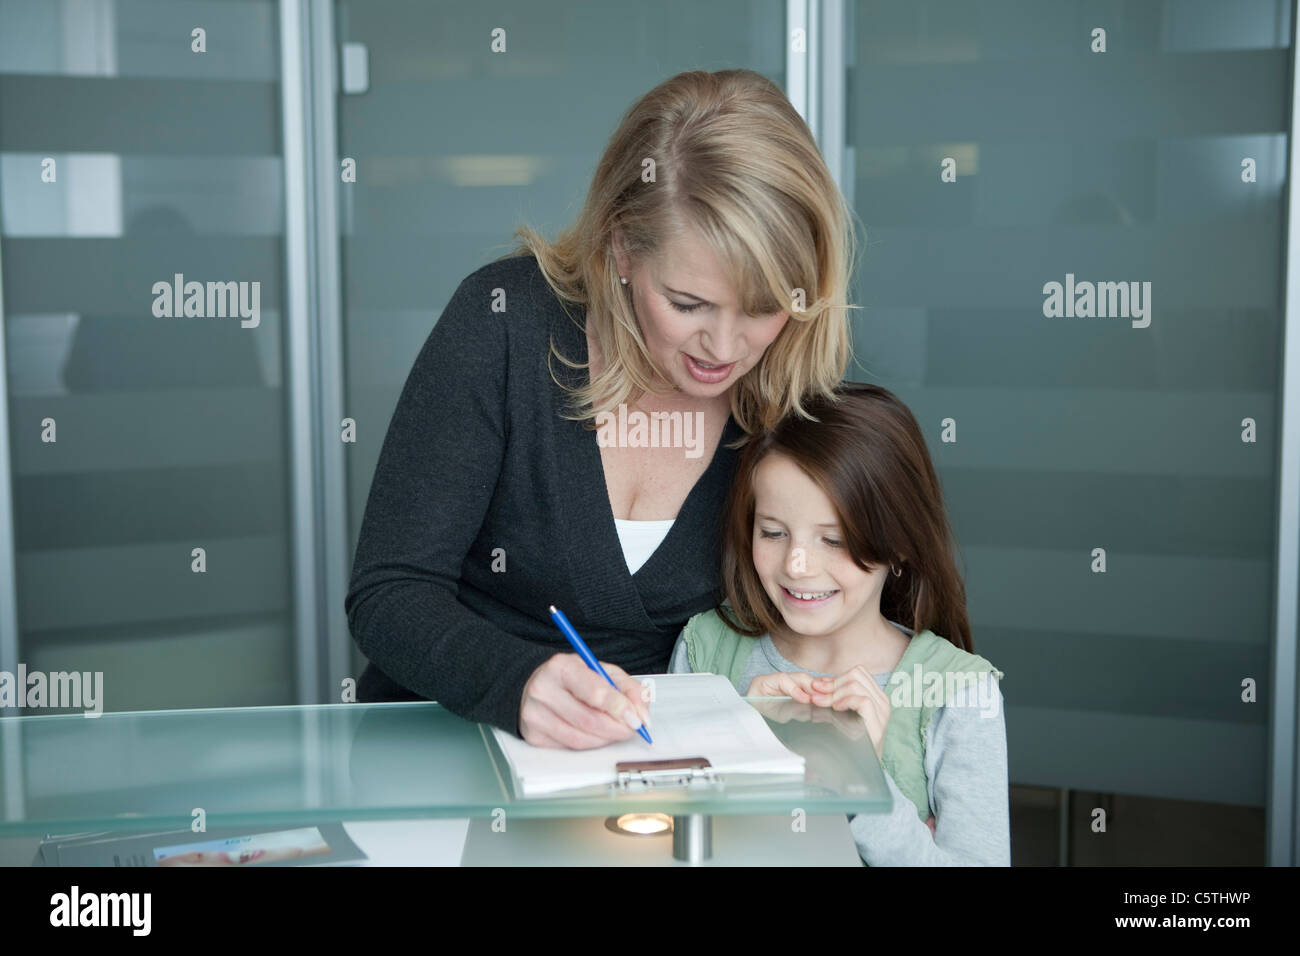 Germany, Bavaria, Landsberg, Mother and daughter (8-9), Mother filling out form at clinic reception - Stock Image